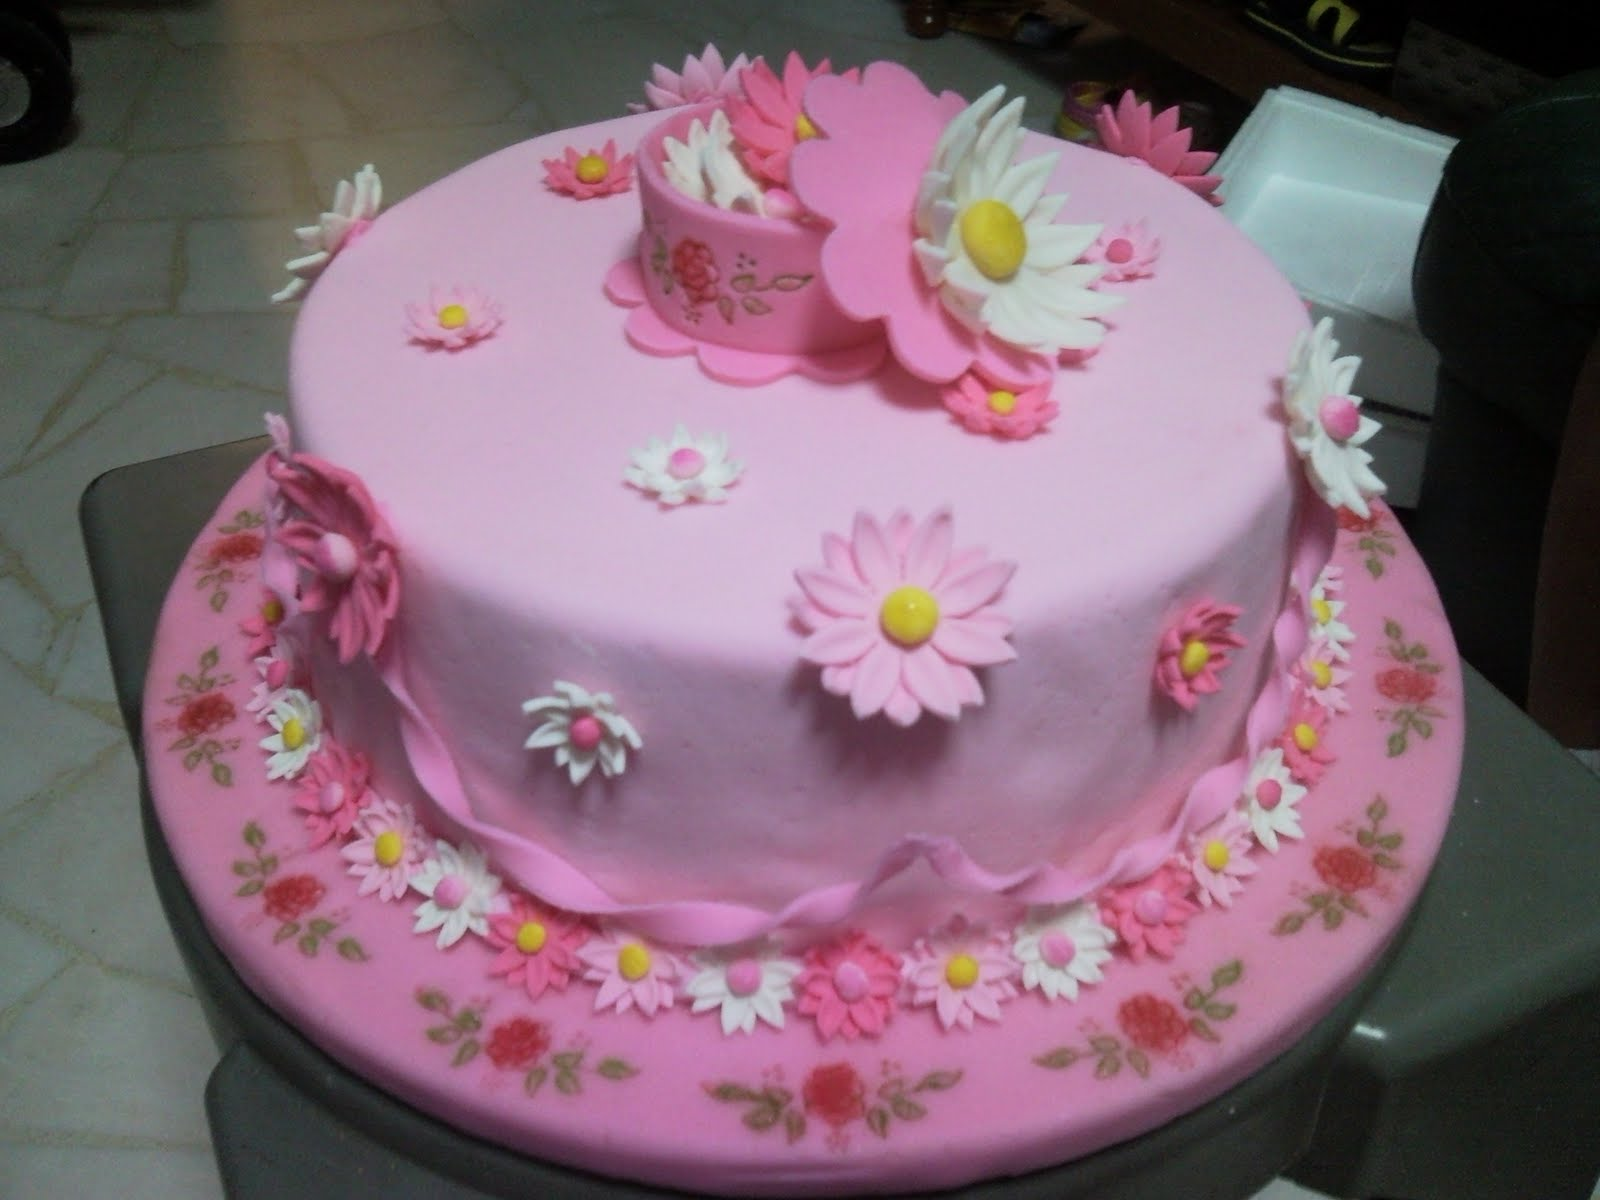 Fun In Cake Decorating: Wilton Cake Decorating Course 4